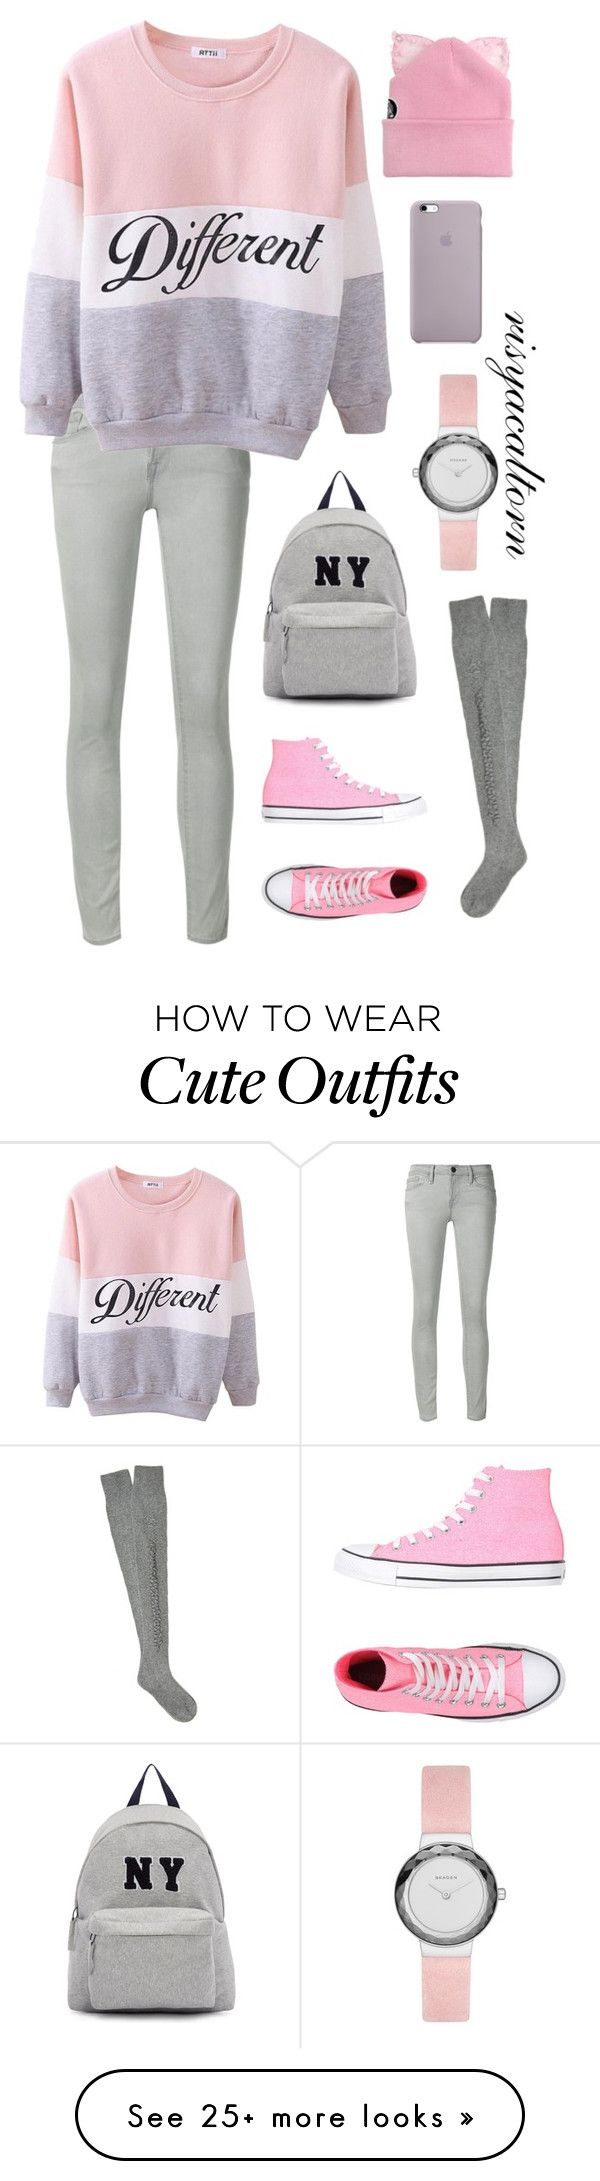 """Simple Hang Out Outfit"" by risyacaltorn on Polyvore featuring Frame Denim, Converse, Joshua's, Silver Spoon Attire, Barrie and Skagen"